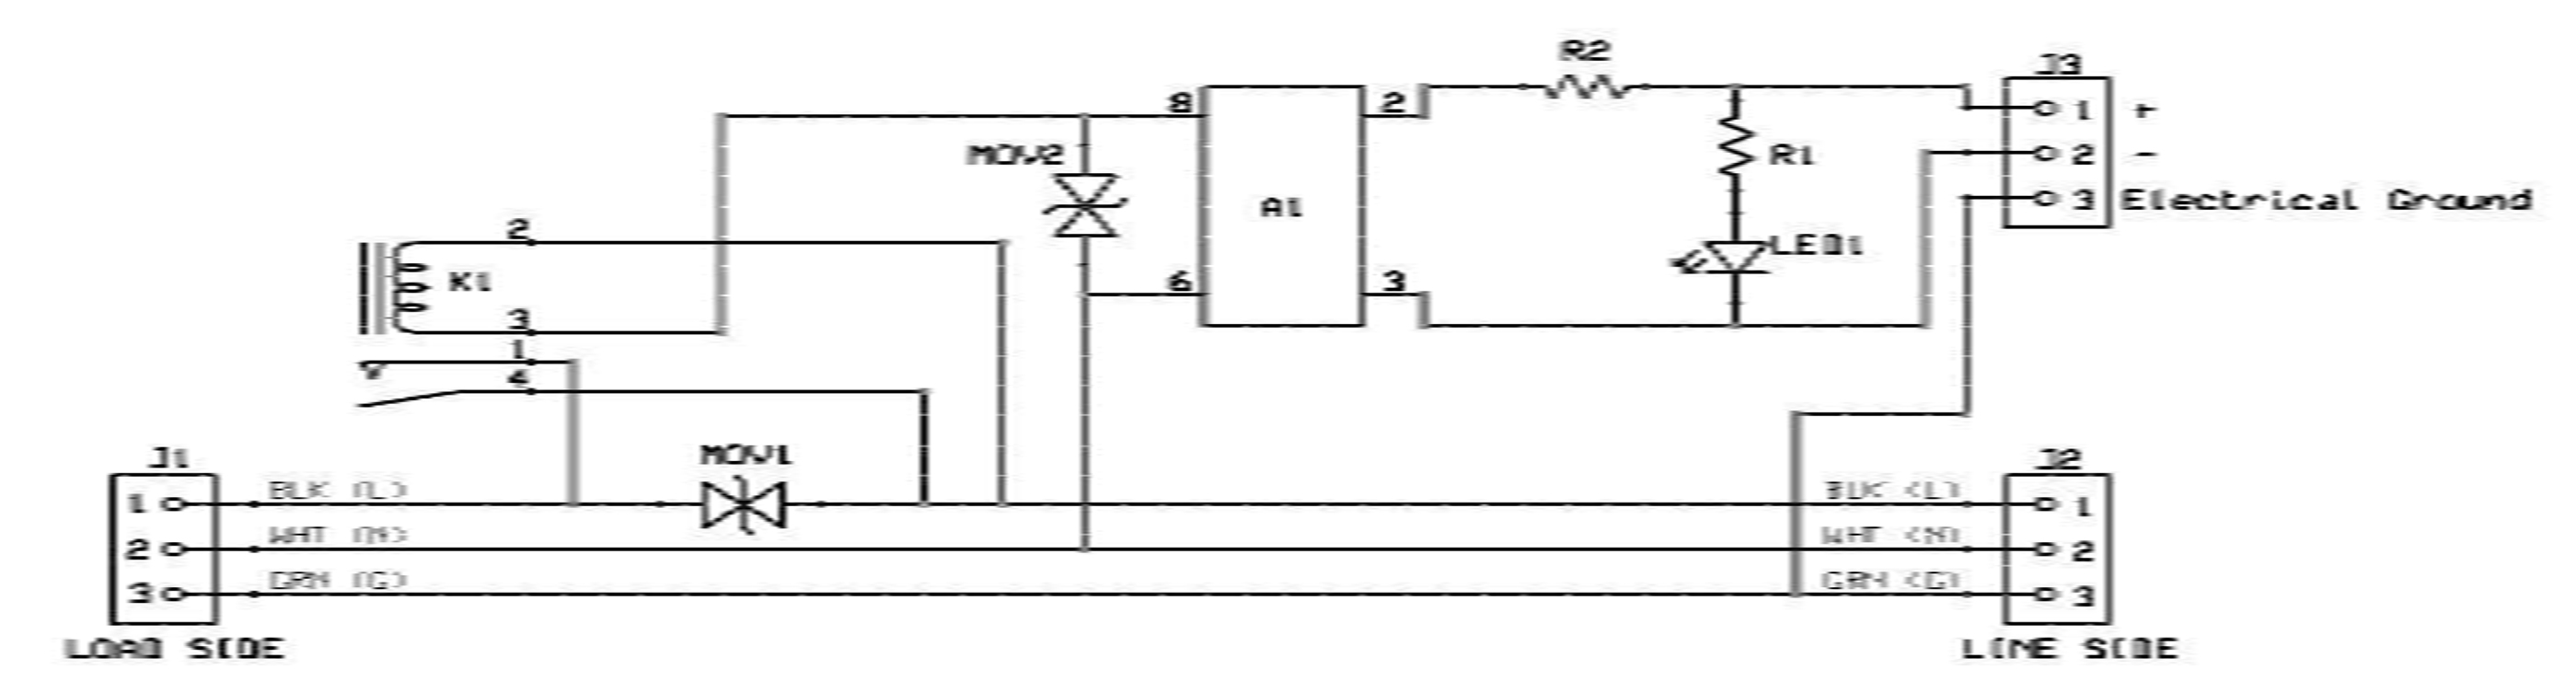 RC snubber circuit design for TRIAC s - STMicroelectronics